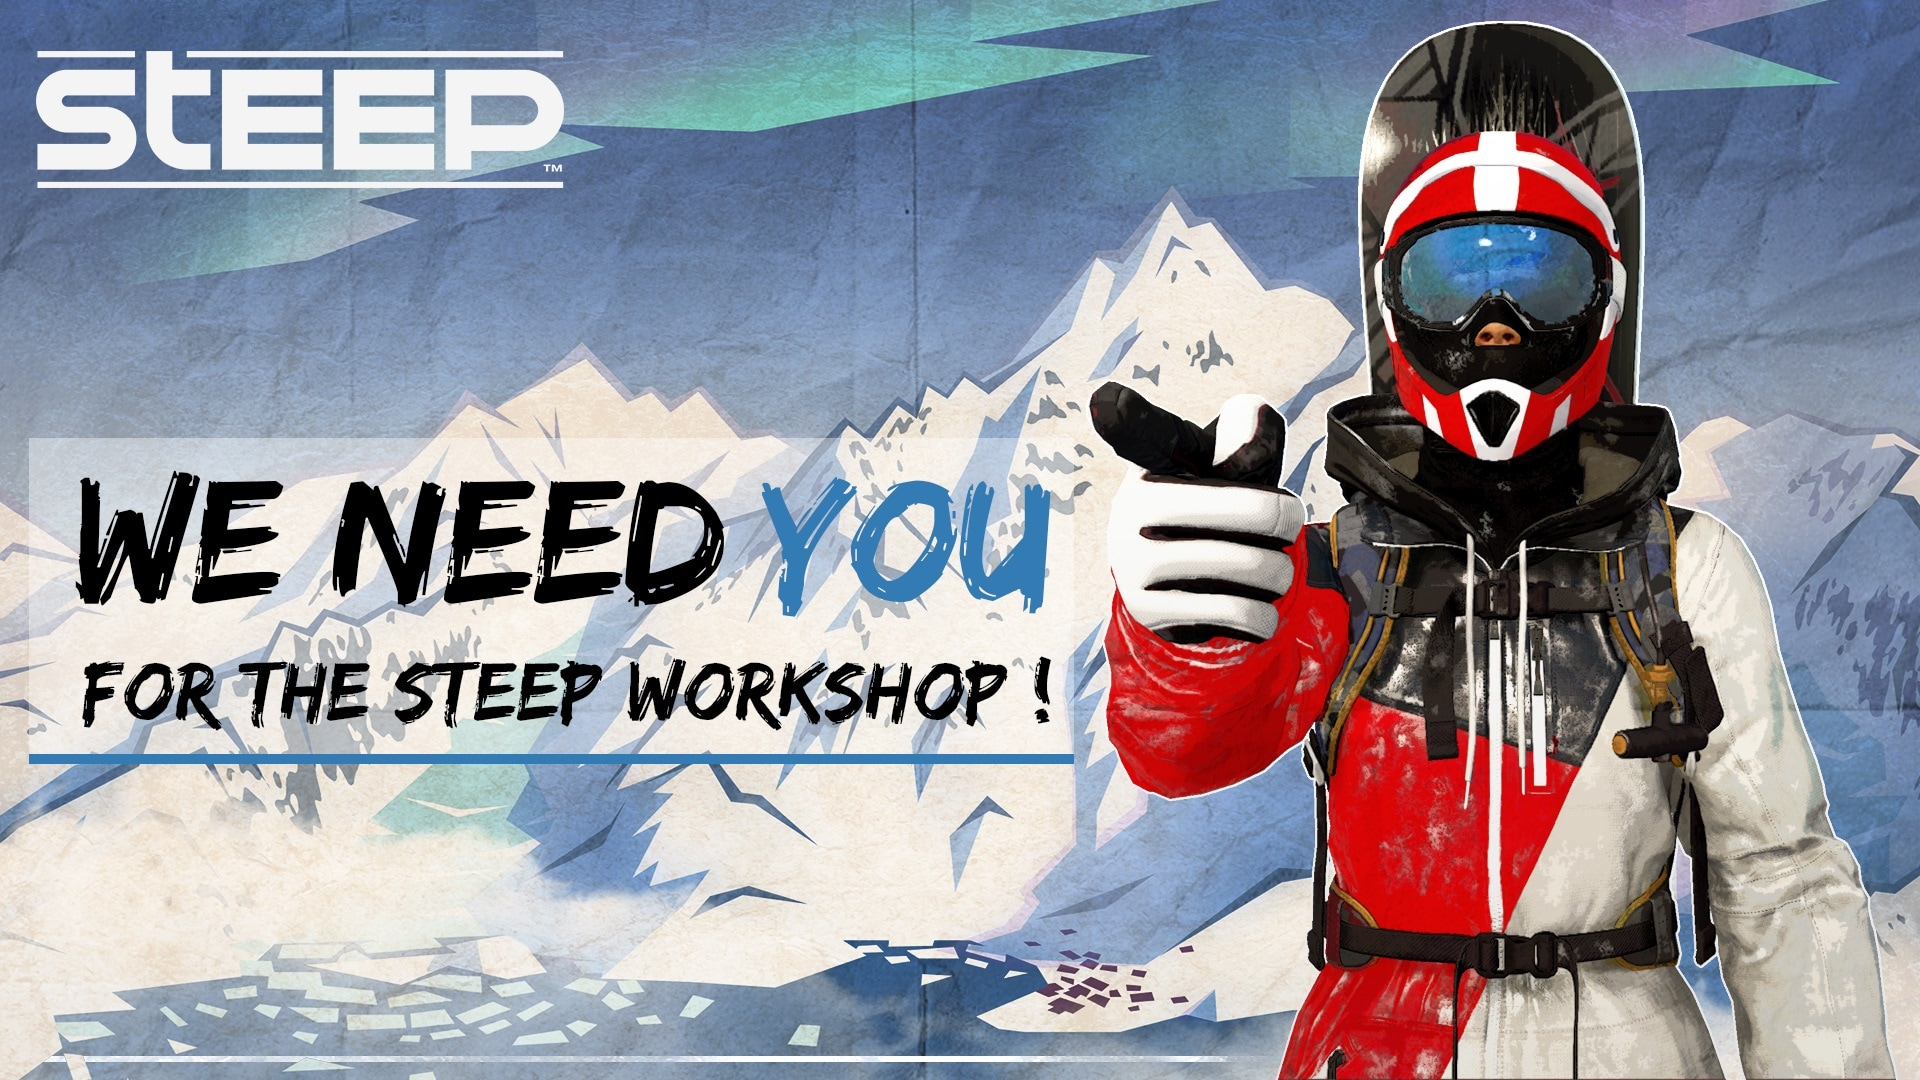 08-04-workshop-HEADER